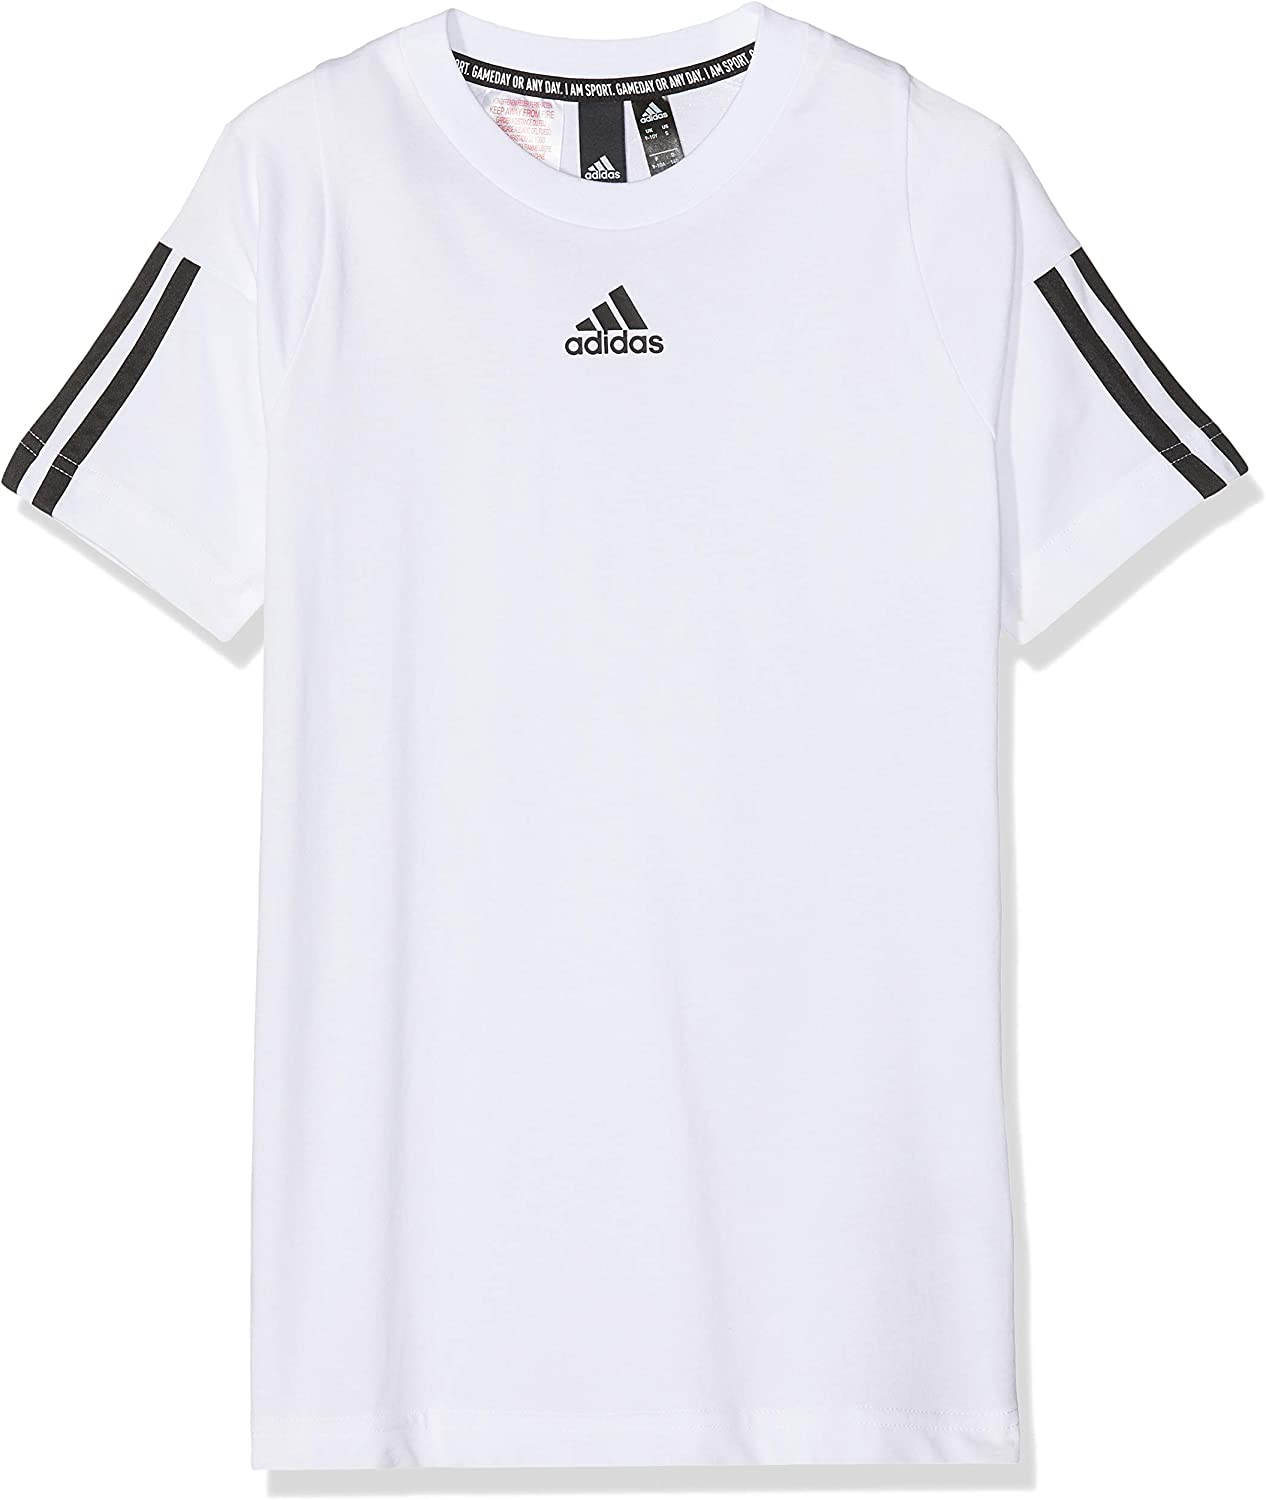 adidas Childrens Must Haves 3-stripes Short Sleeve T-Shirt